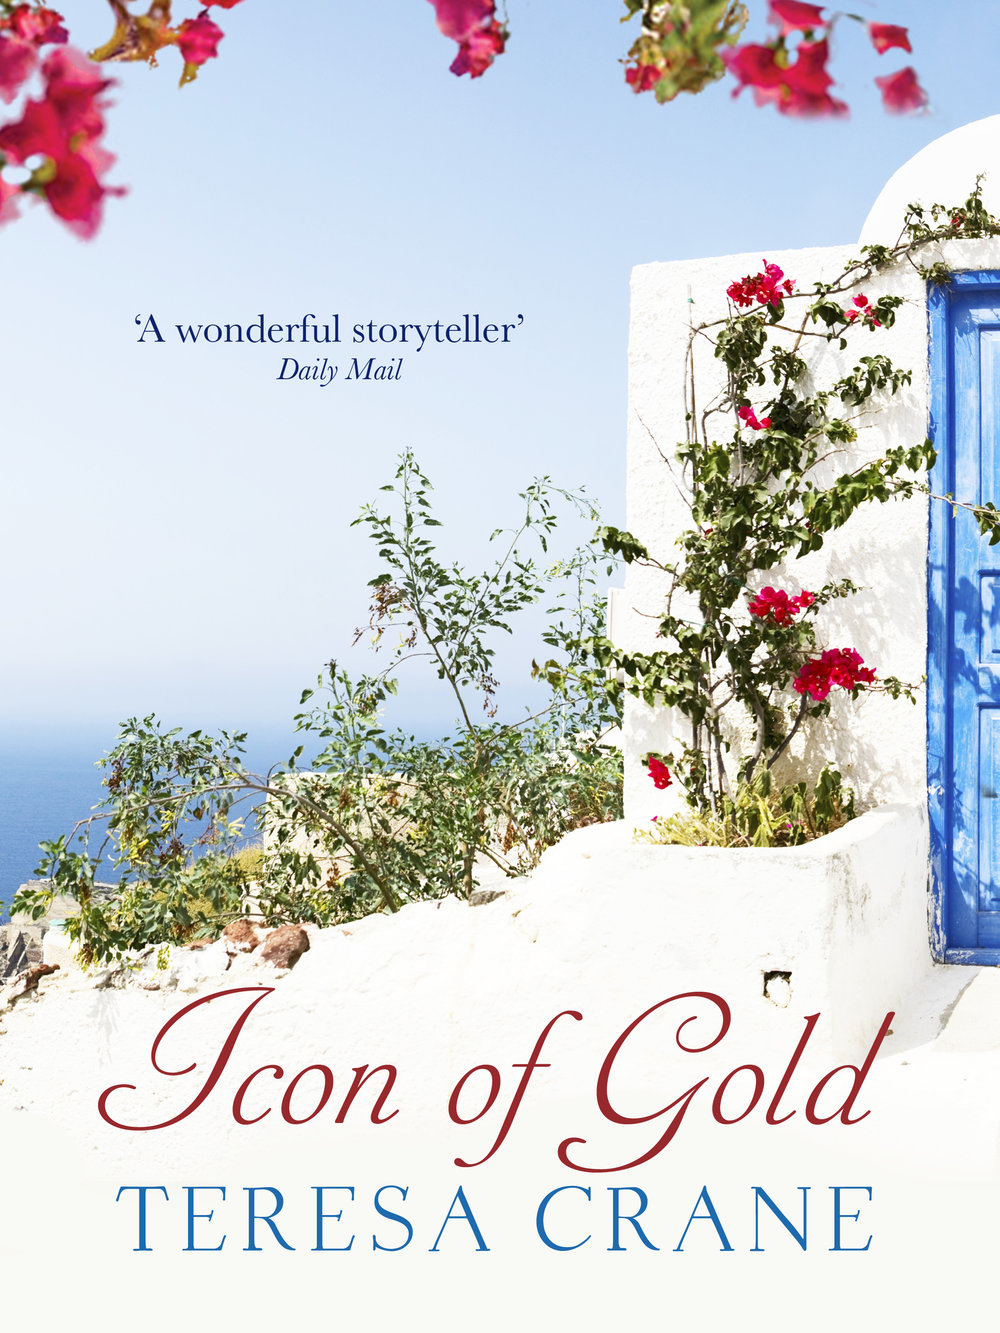 ICON OF GOLD Historical, 390 pages Canelo, March 2016 A forbidden love torn between 1950s Britain and Greece.